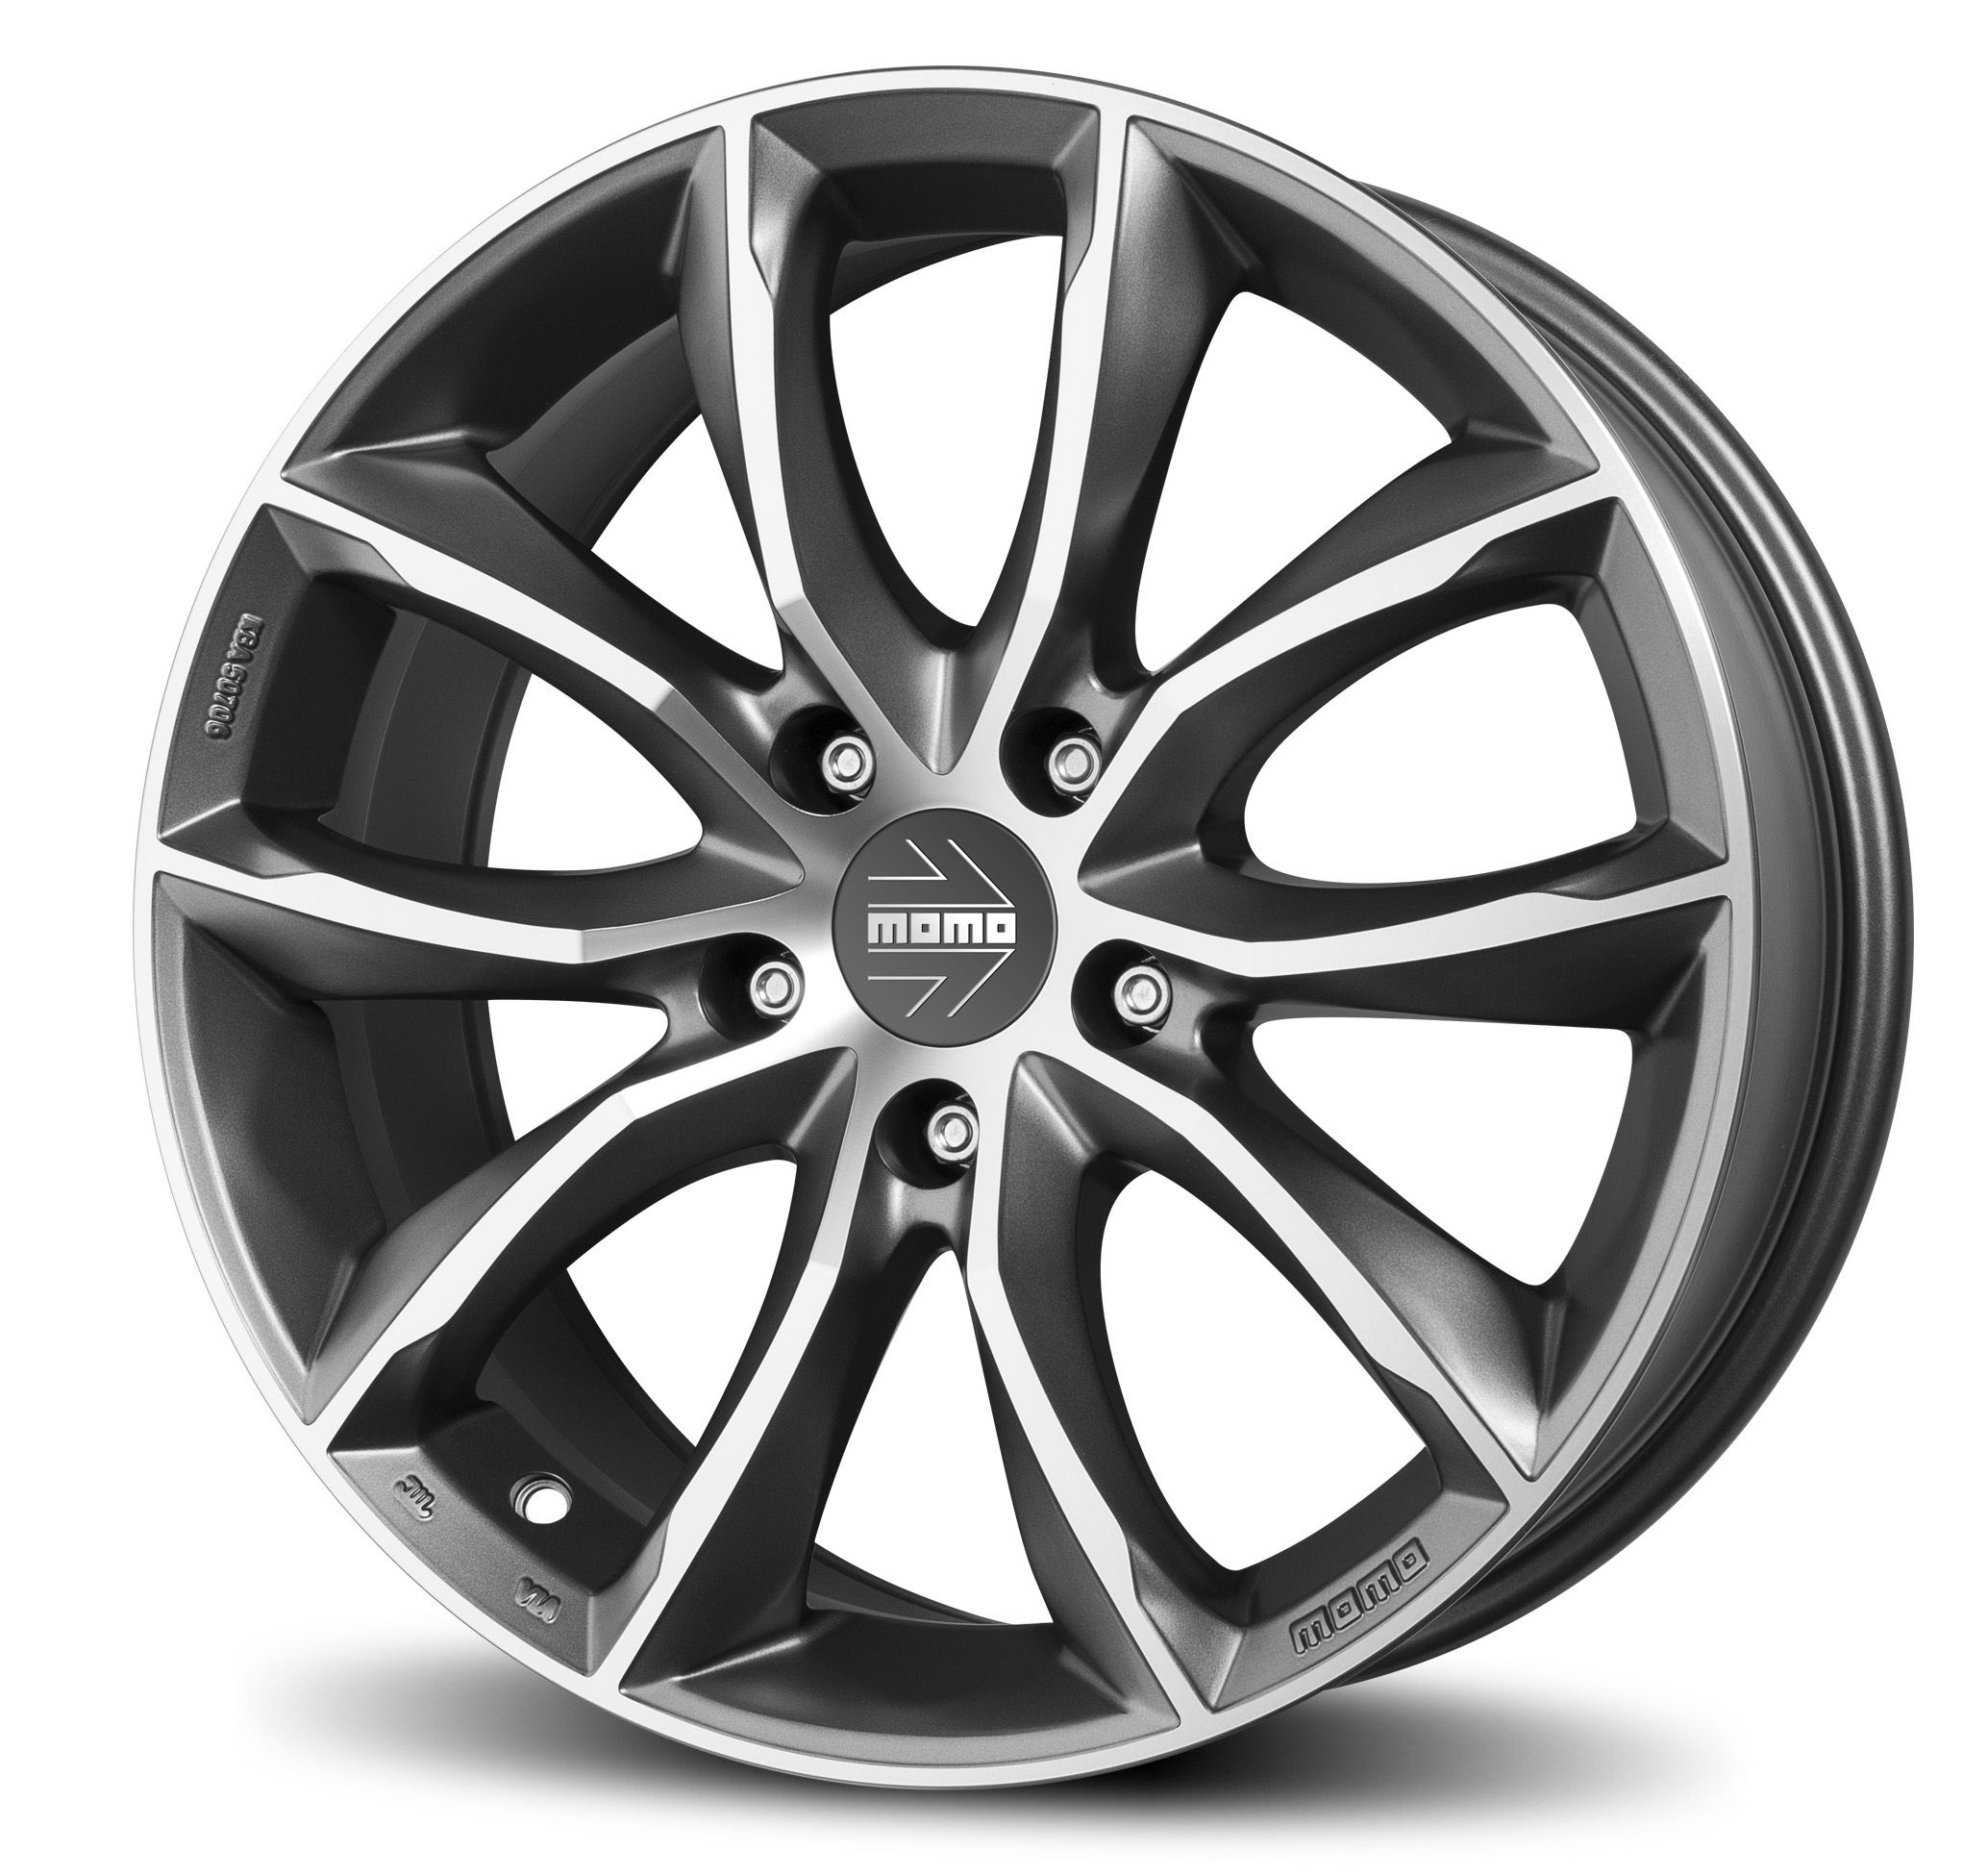 Felge Momo Scream Jet Evo 8,0 X 17 Et40 5X114,3 72,3 Matt Anthracite D. Cut Via